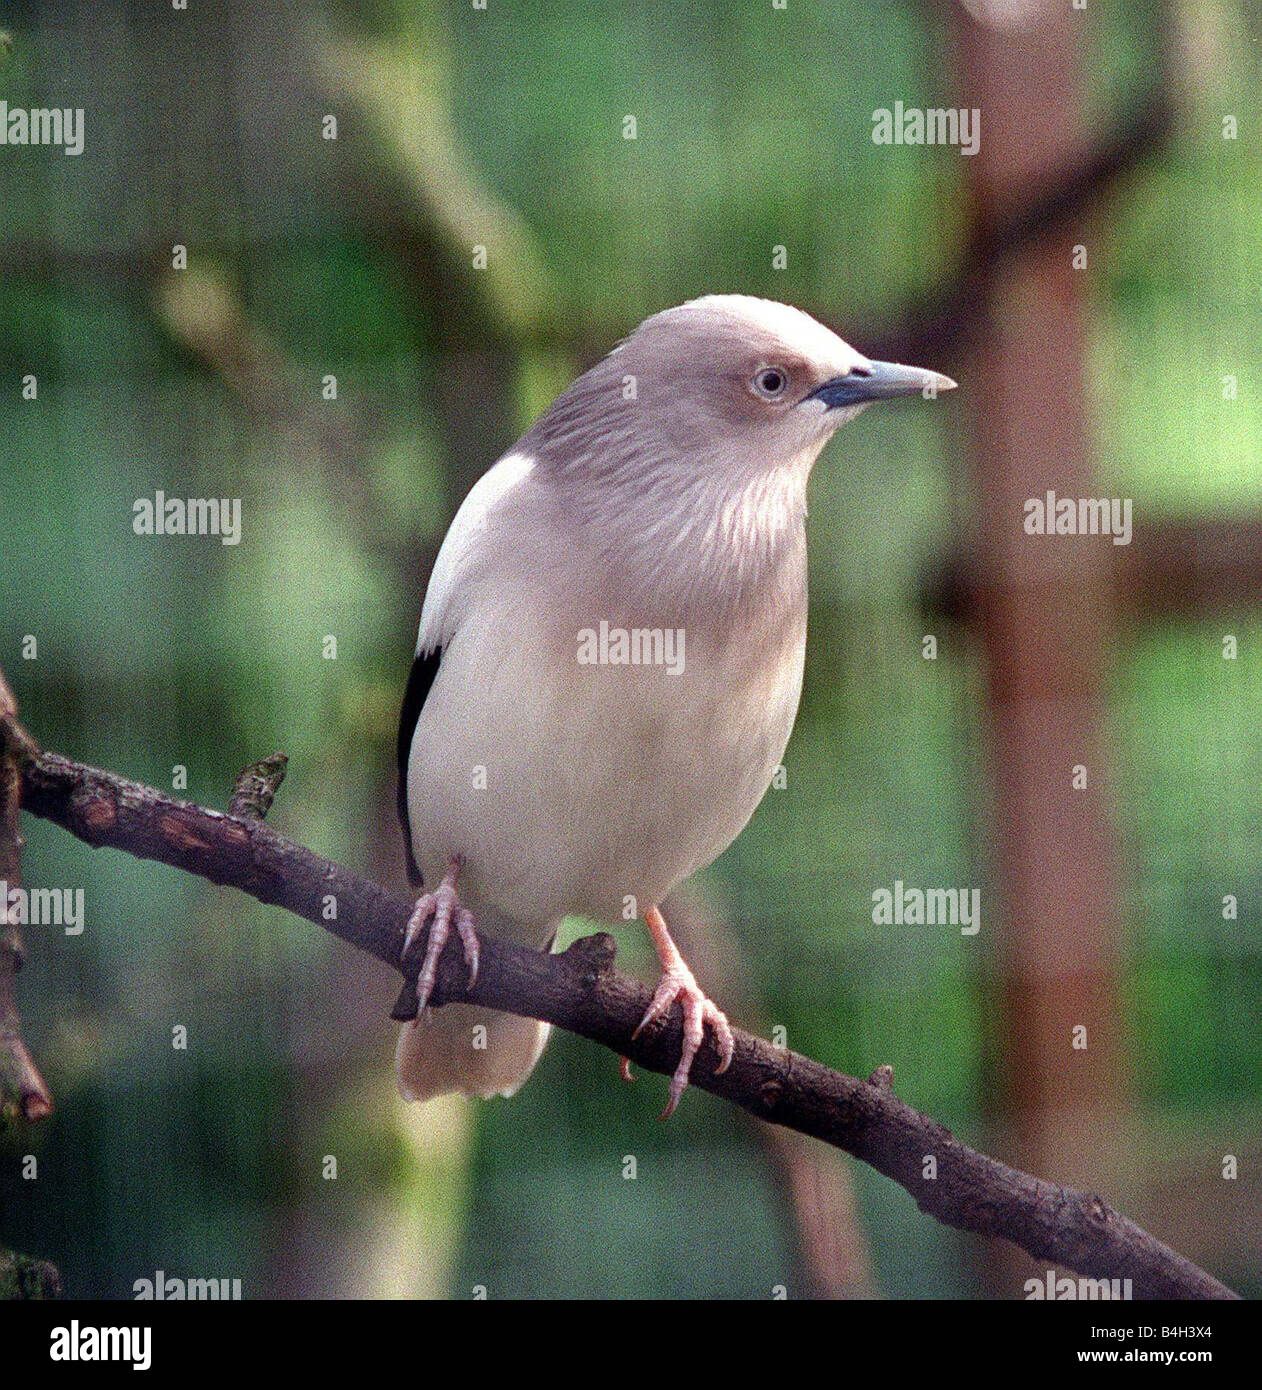 Birds White Wing Starling June 2002 - Stock Image